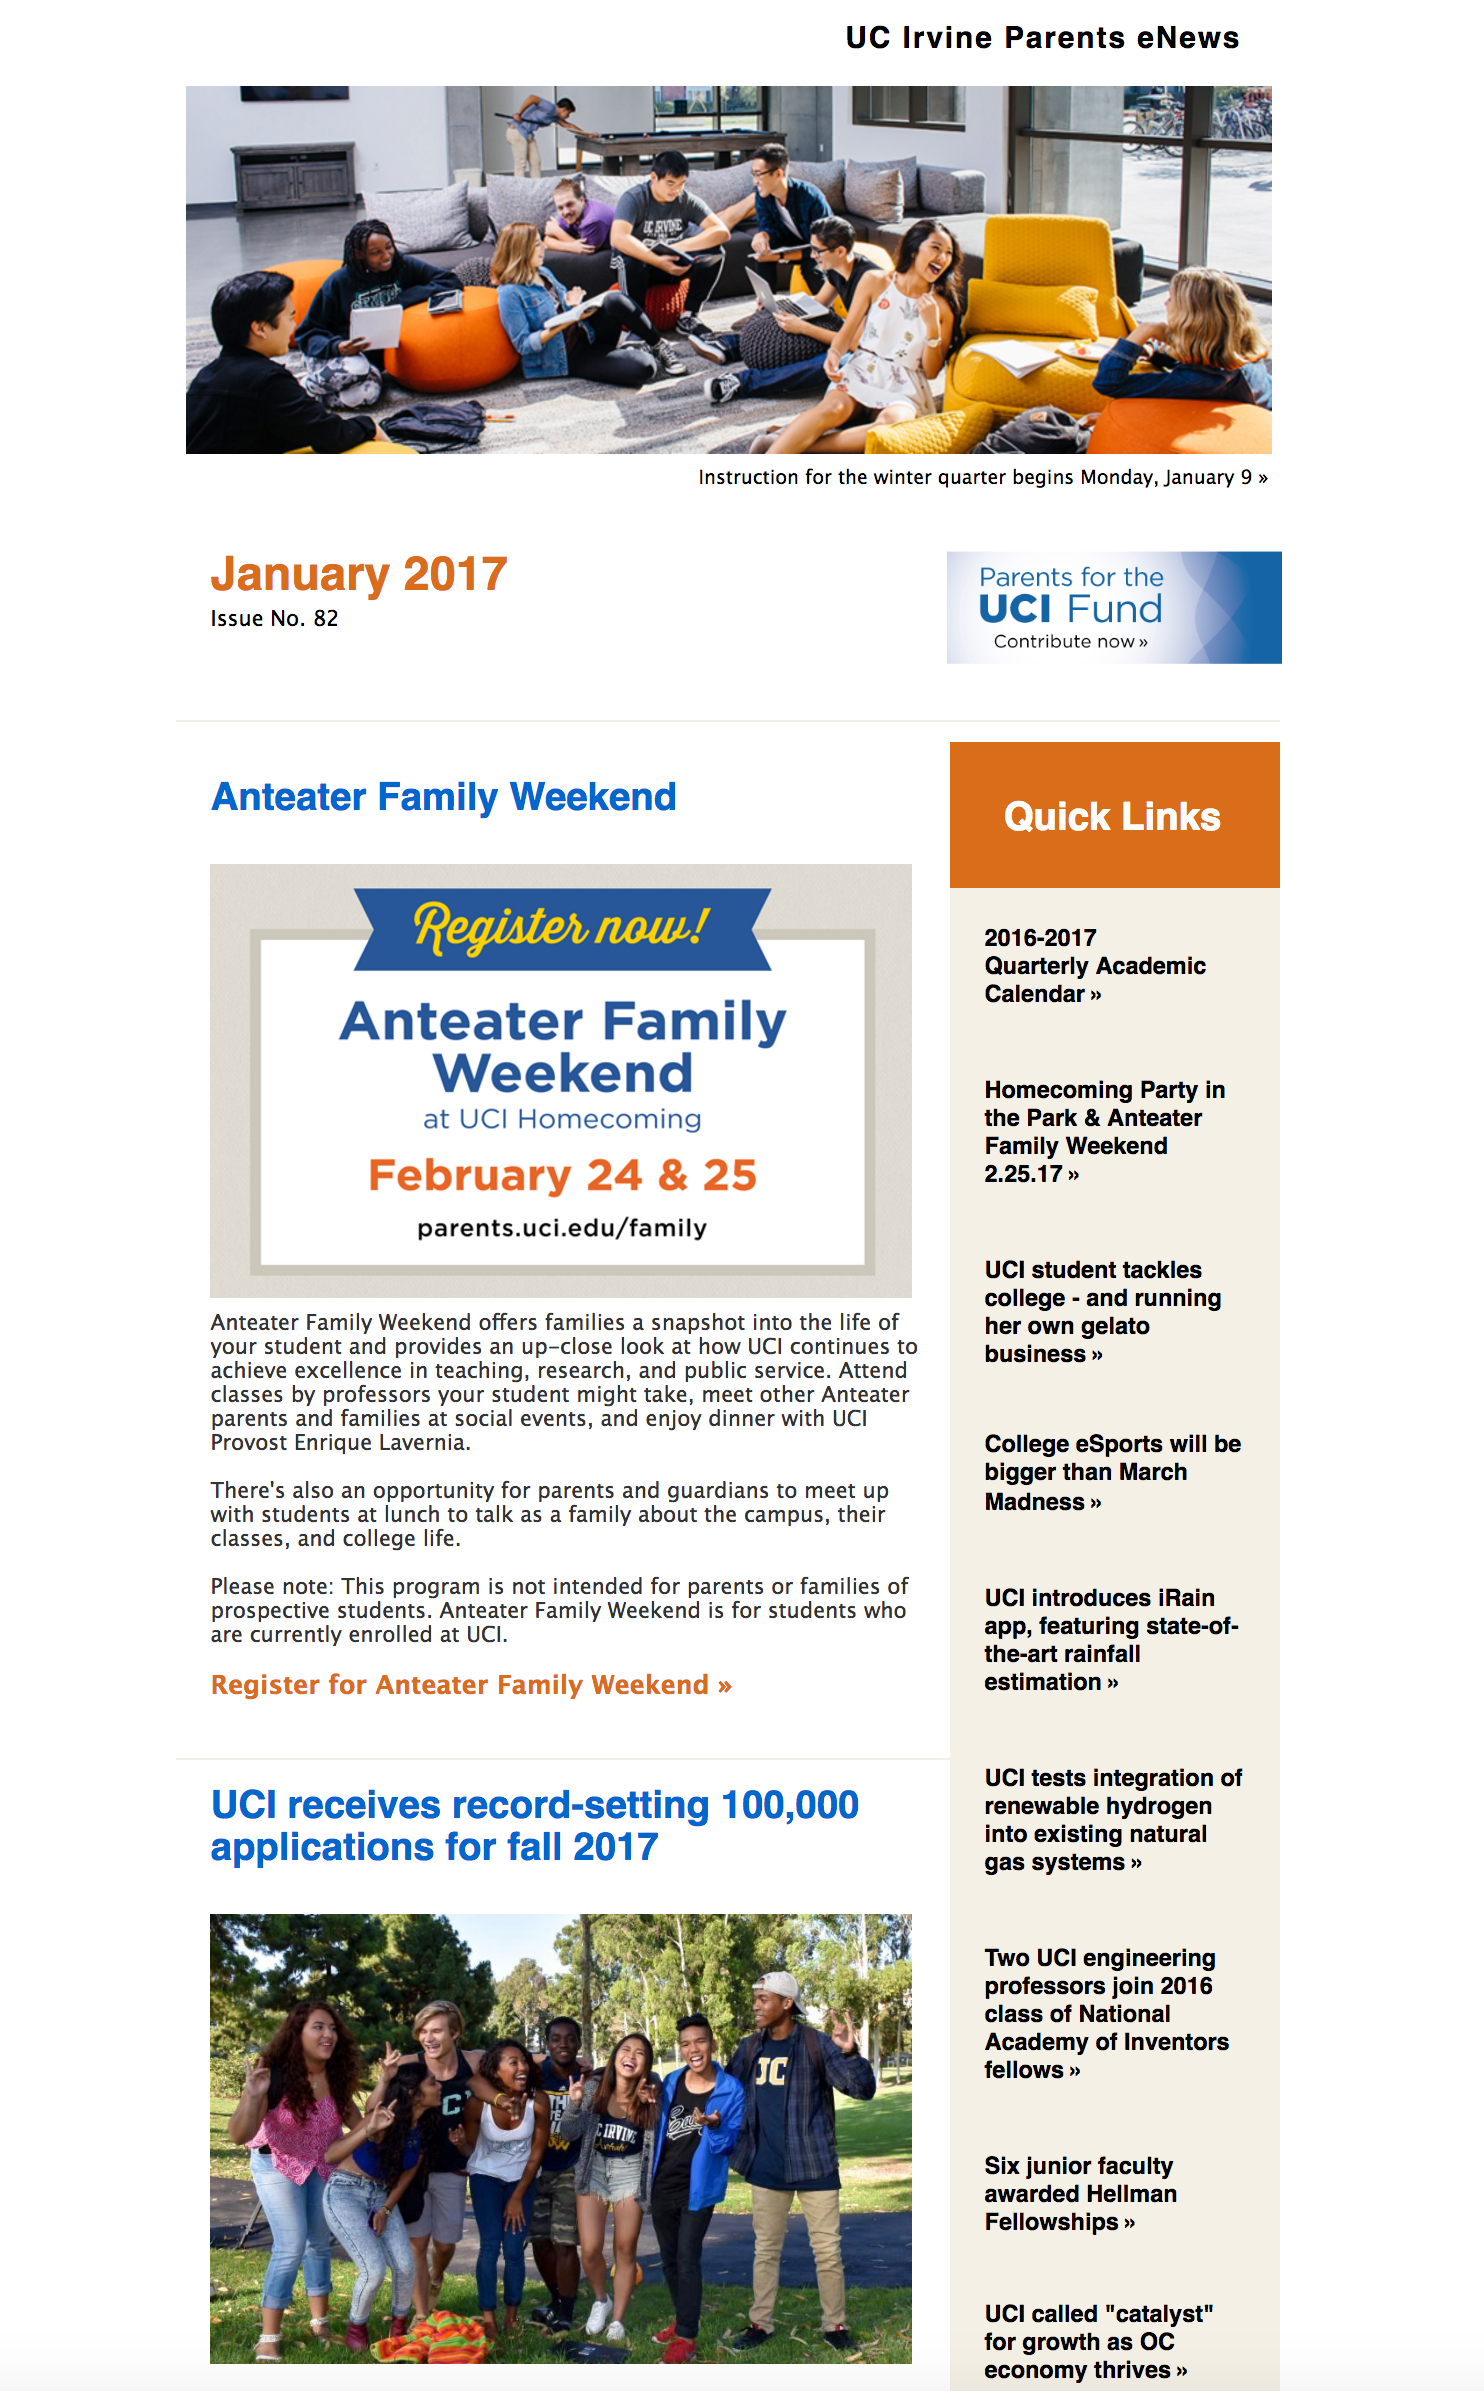 January 2017 Parents eNews